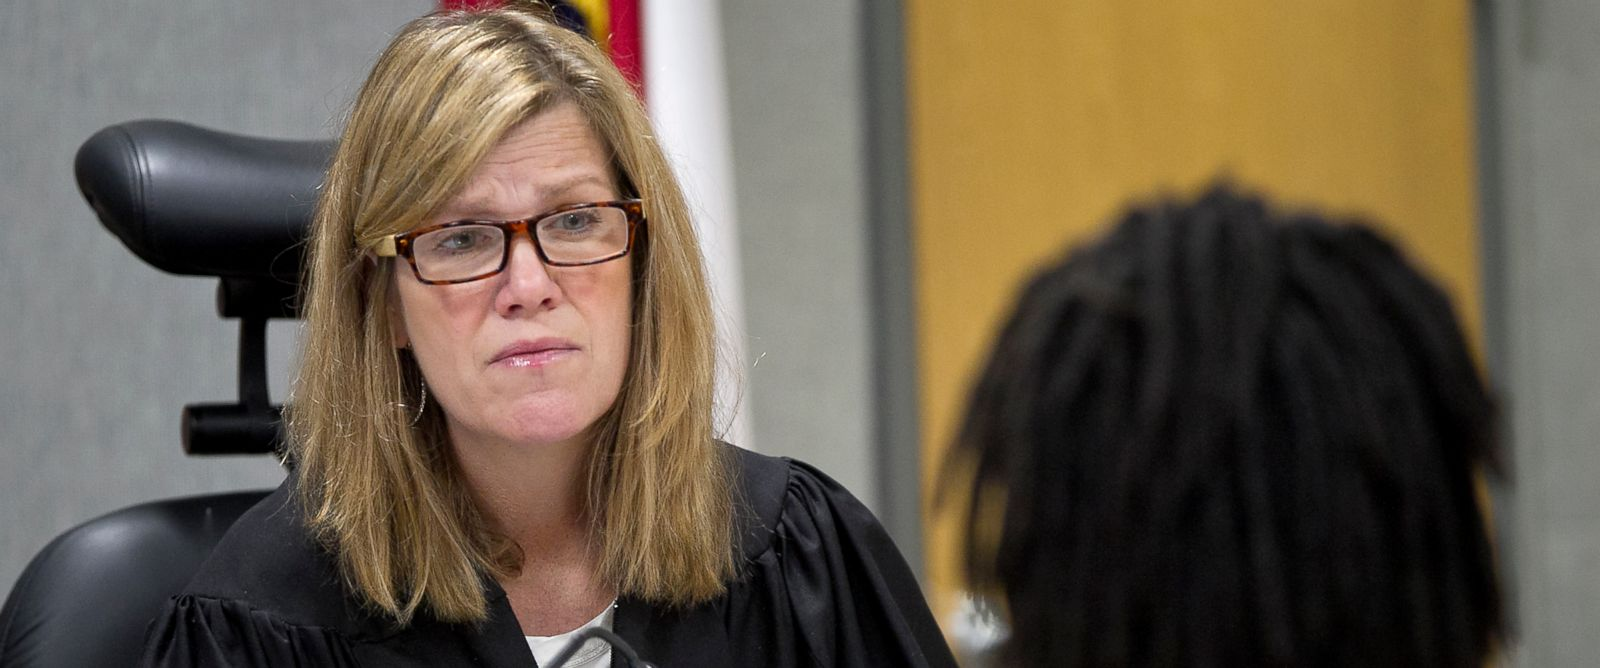 PHOTO: In this March 28, 2014 photo, Judge Julie Kocurek presides over her court in Austin. Police are searching for suspects after Kocurek was shot and wounded in the driveway of her Austin home on Nov. 6, 2015.